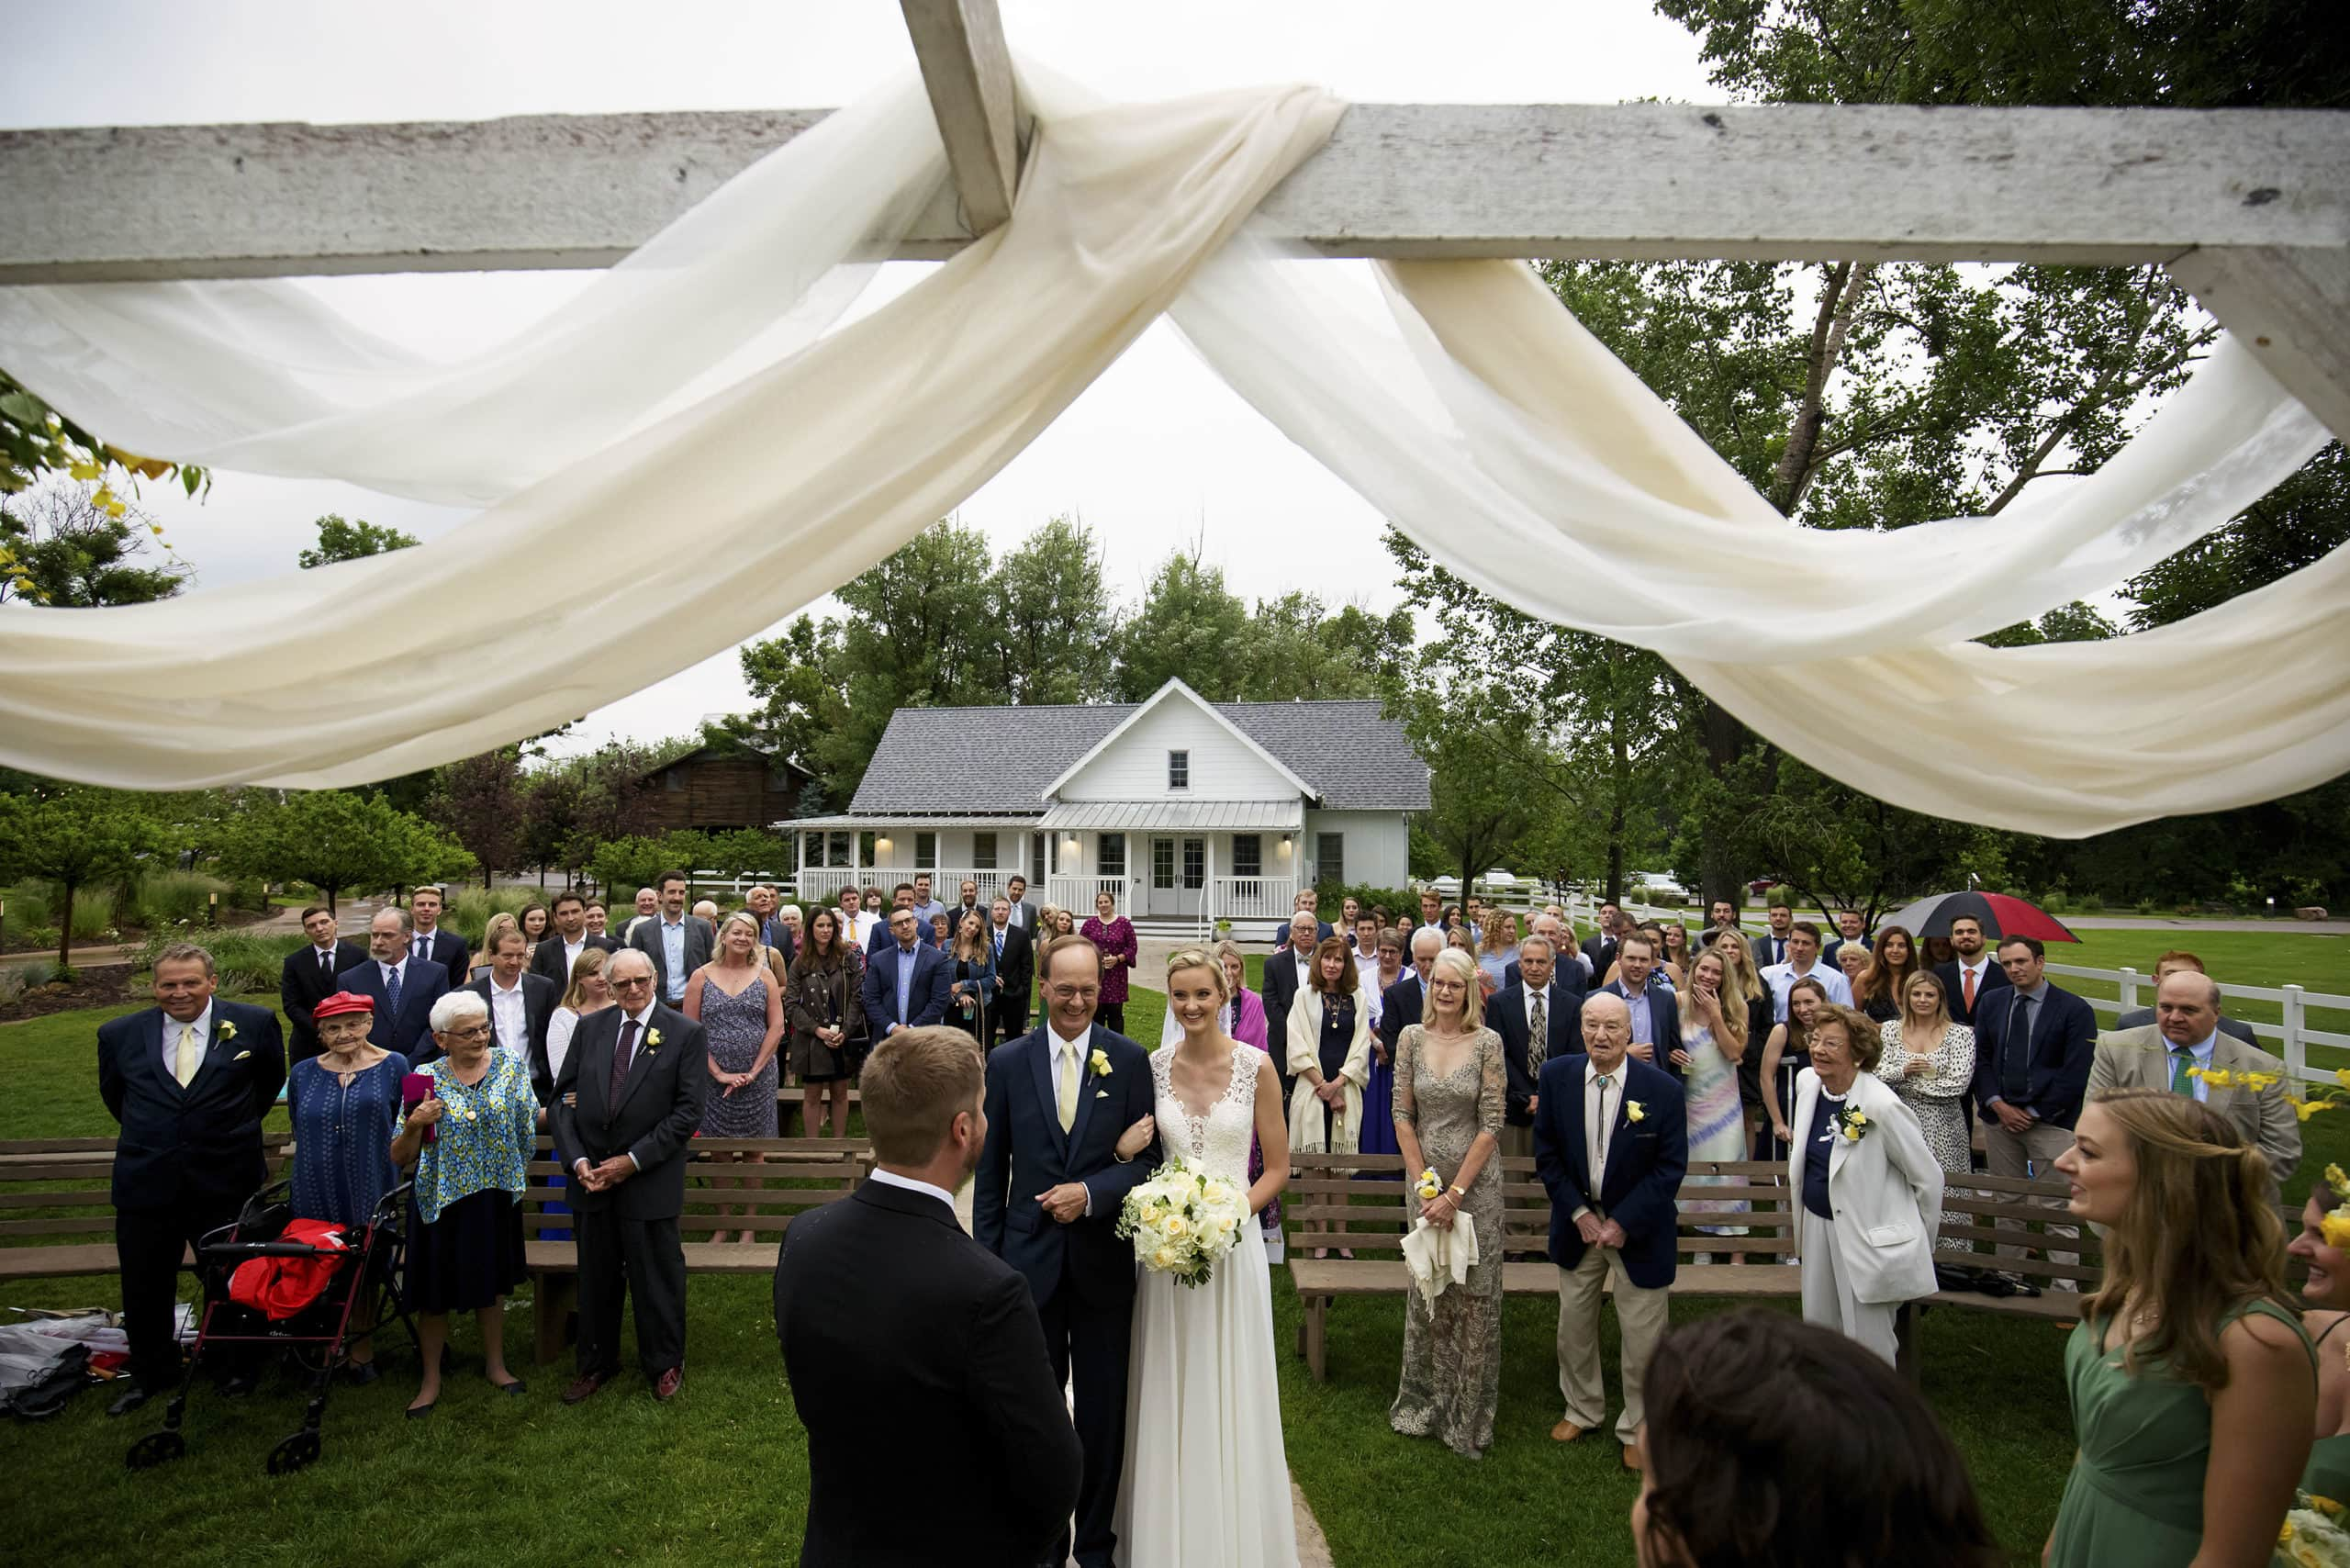 Jennifer and Stefan's wedding ceremony at the barn at raccoon creek